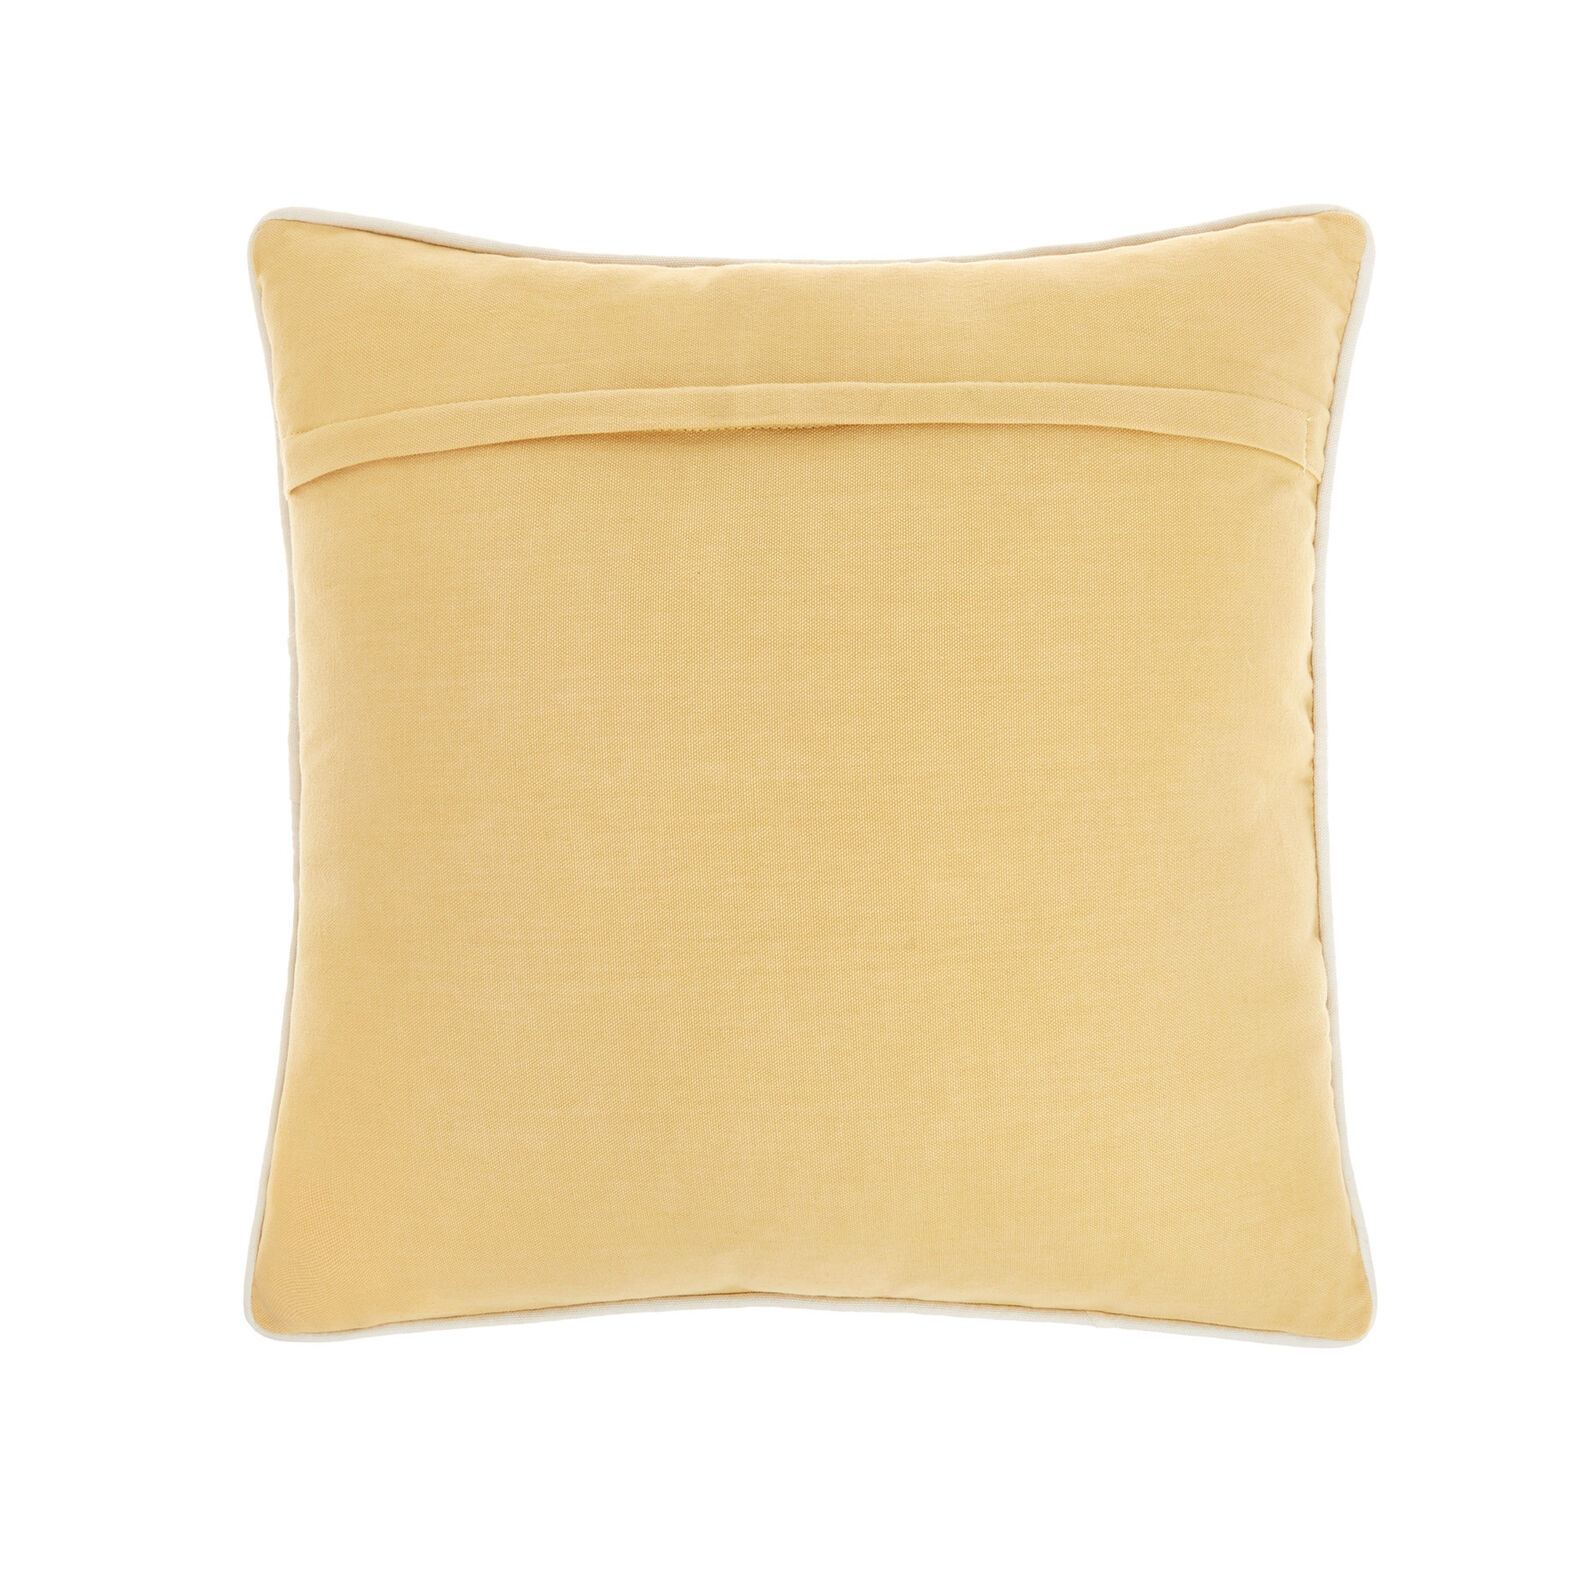 Cotton cushion with shell embroidery 45x45cm